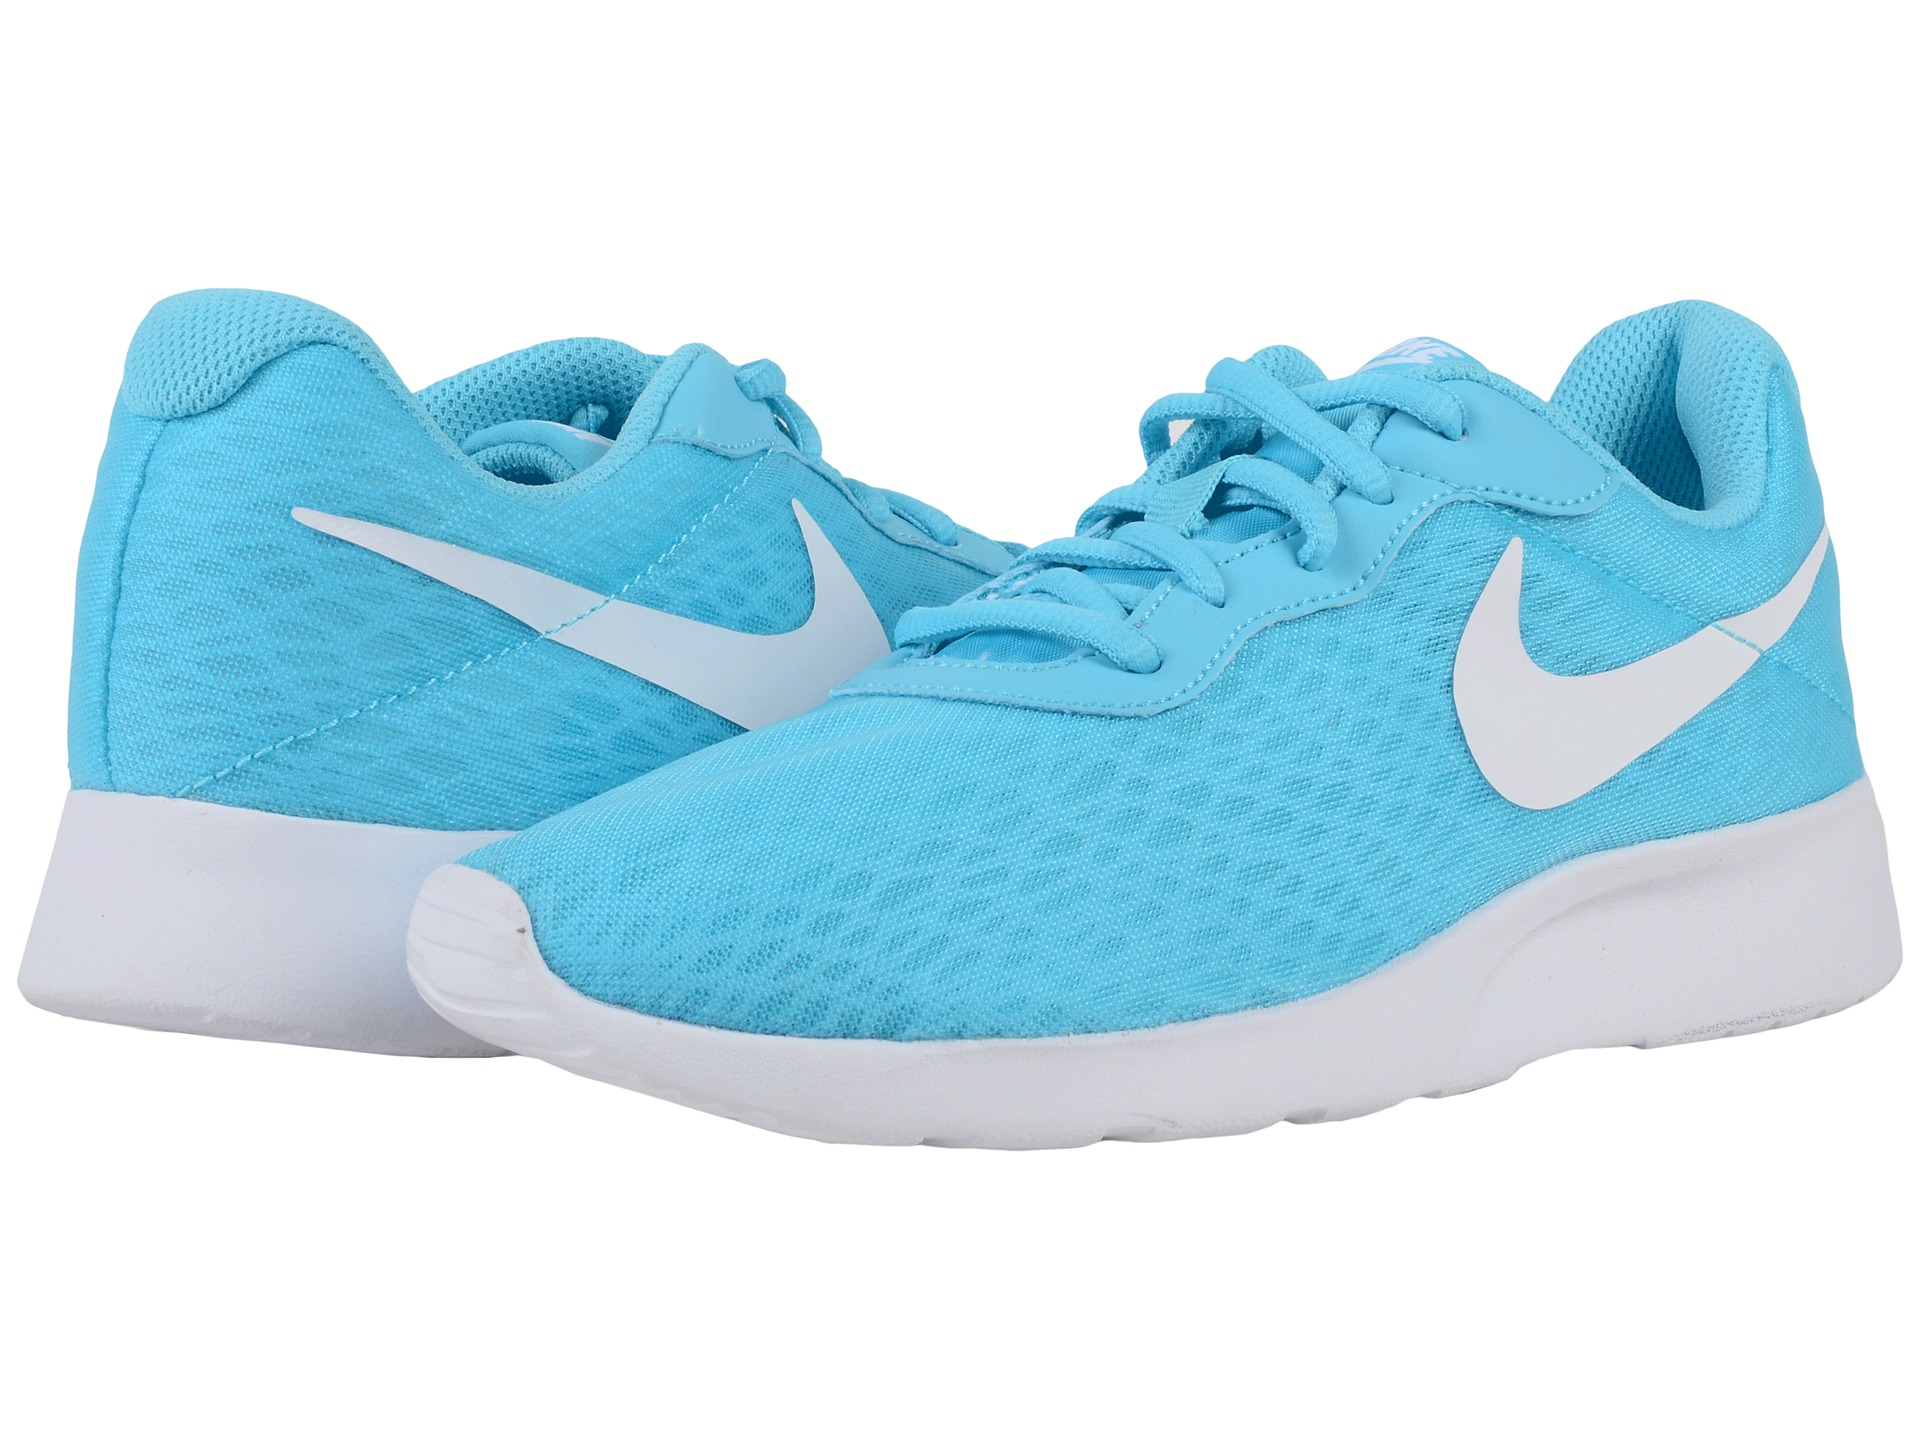 Chaussures Nike Wmns Tanjun BR